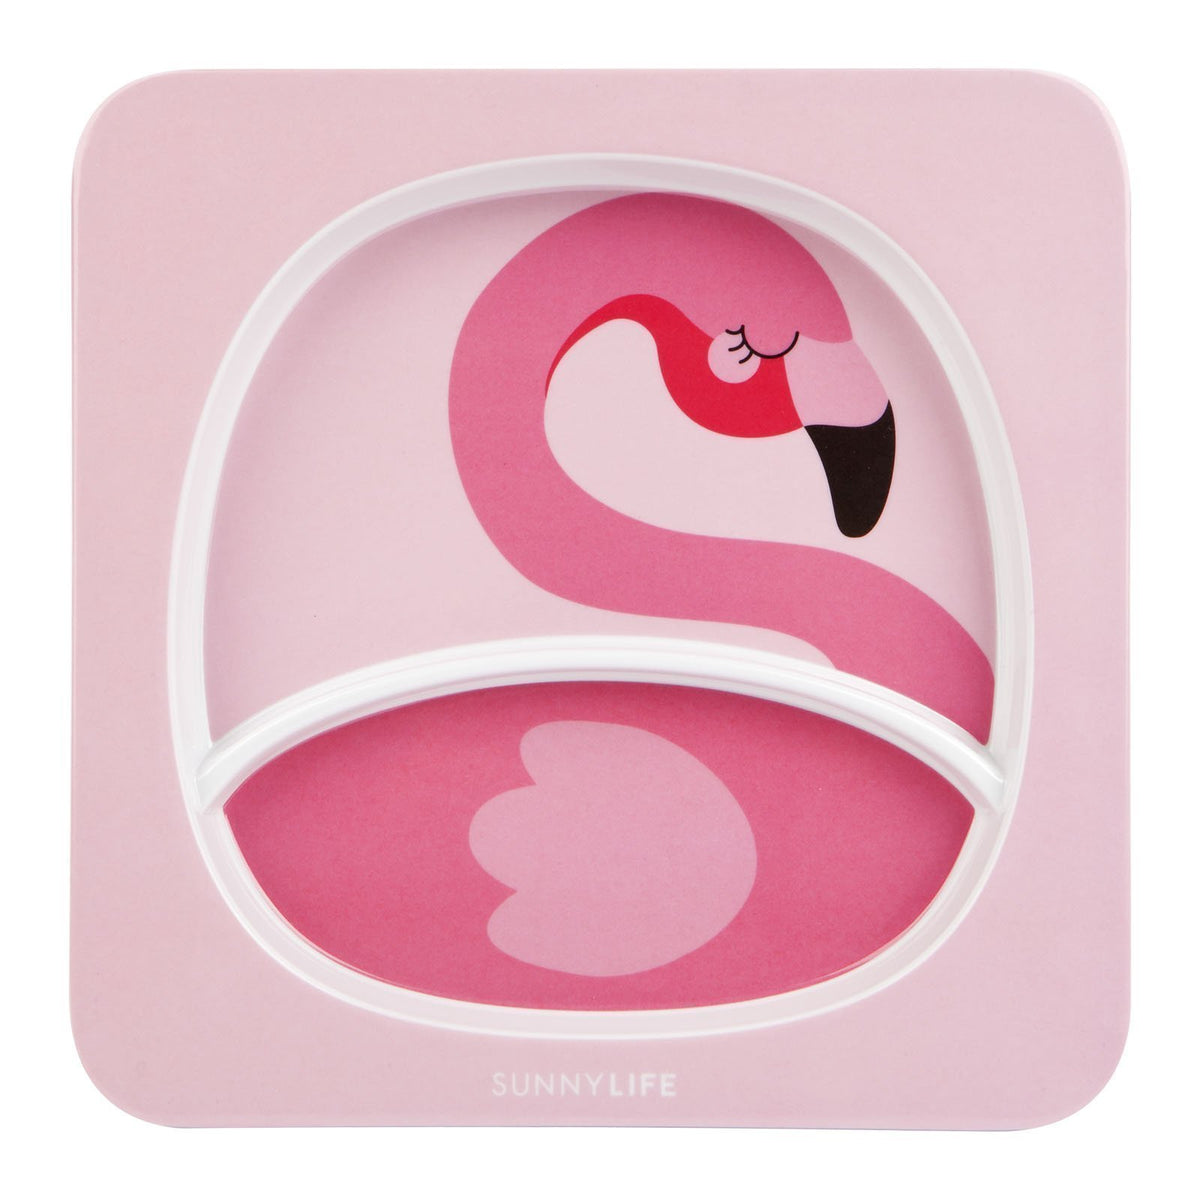 Sunnylife | Kids Plate | Flamingo